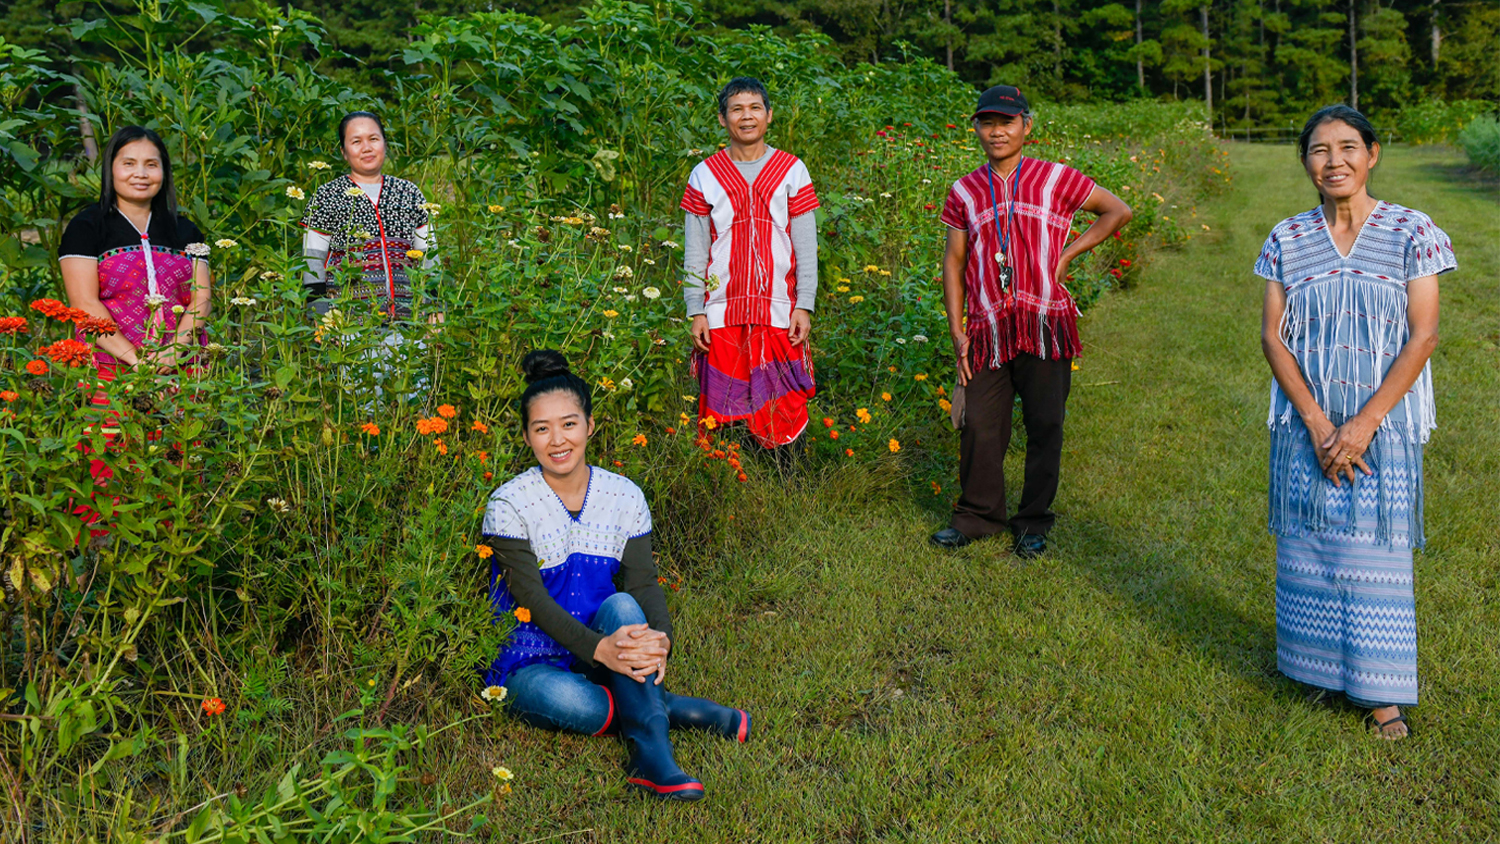 A group of Myanmar refugees standing in a garden